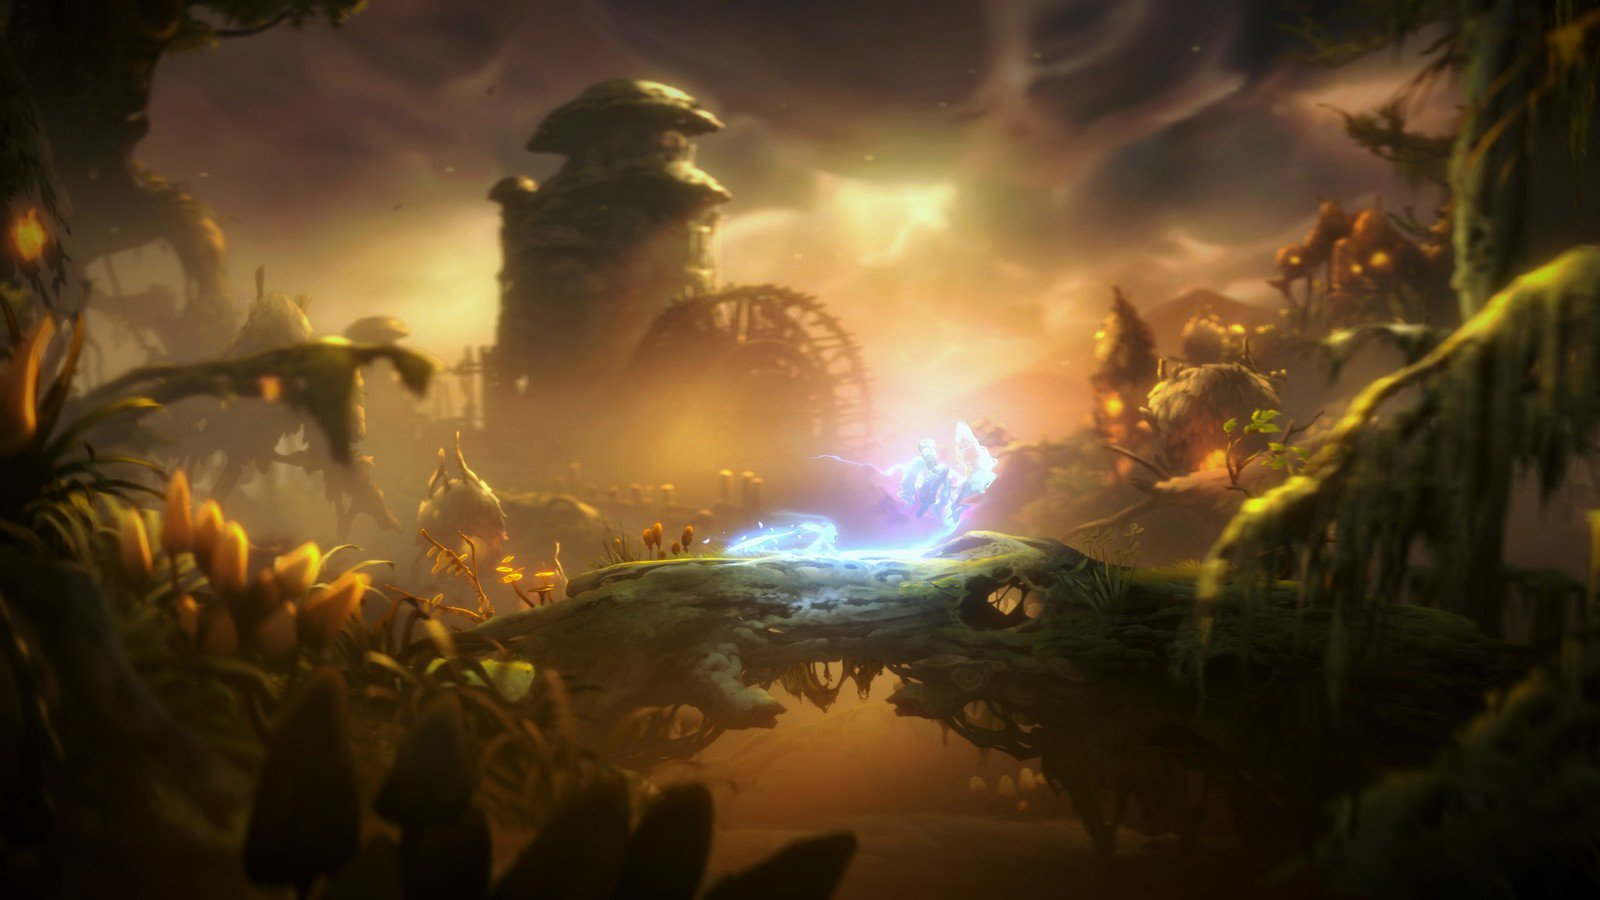 ori and the will of the wisps game wallpaper 67650